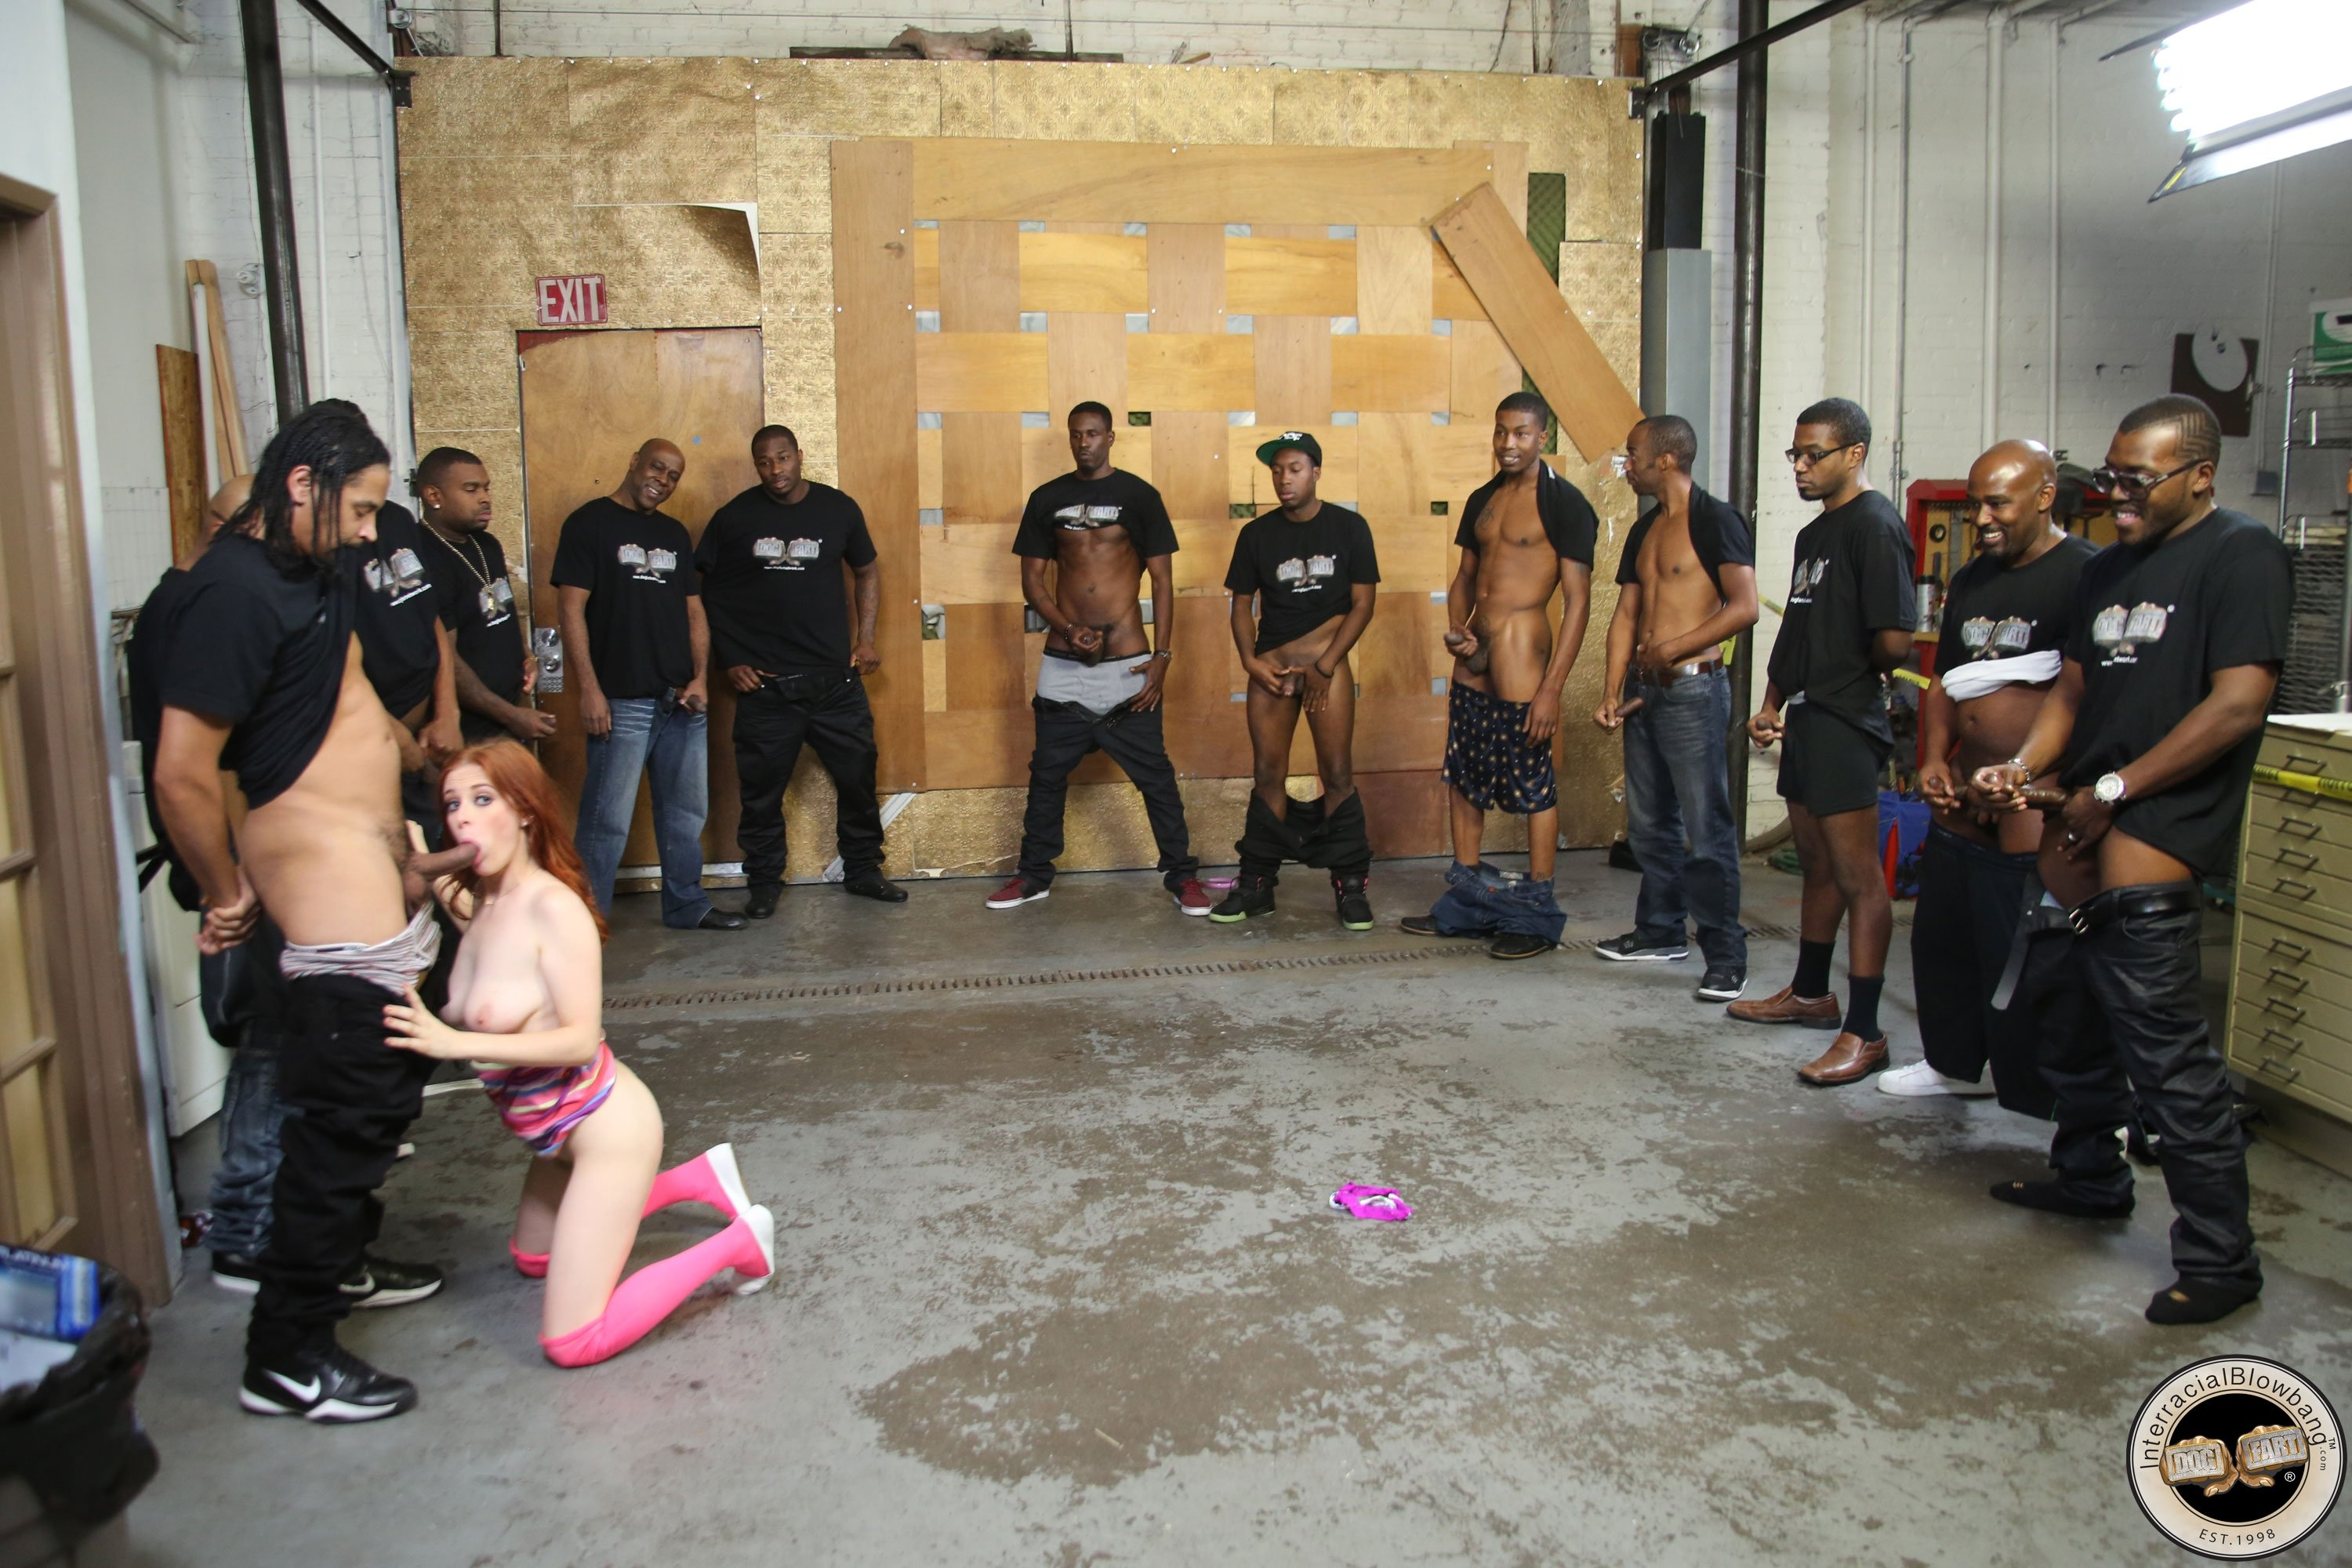 Miss nudist small pageant